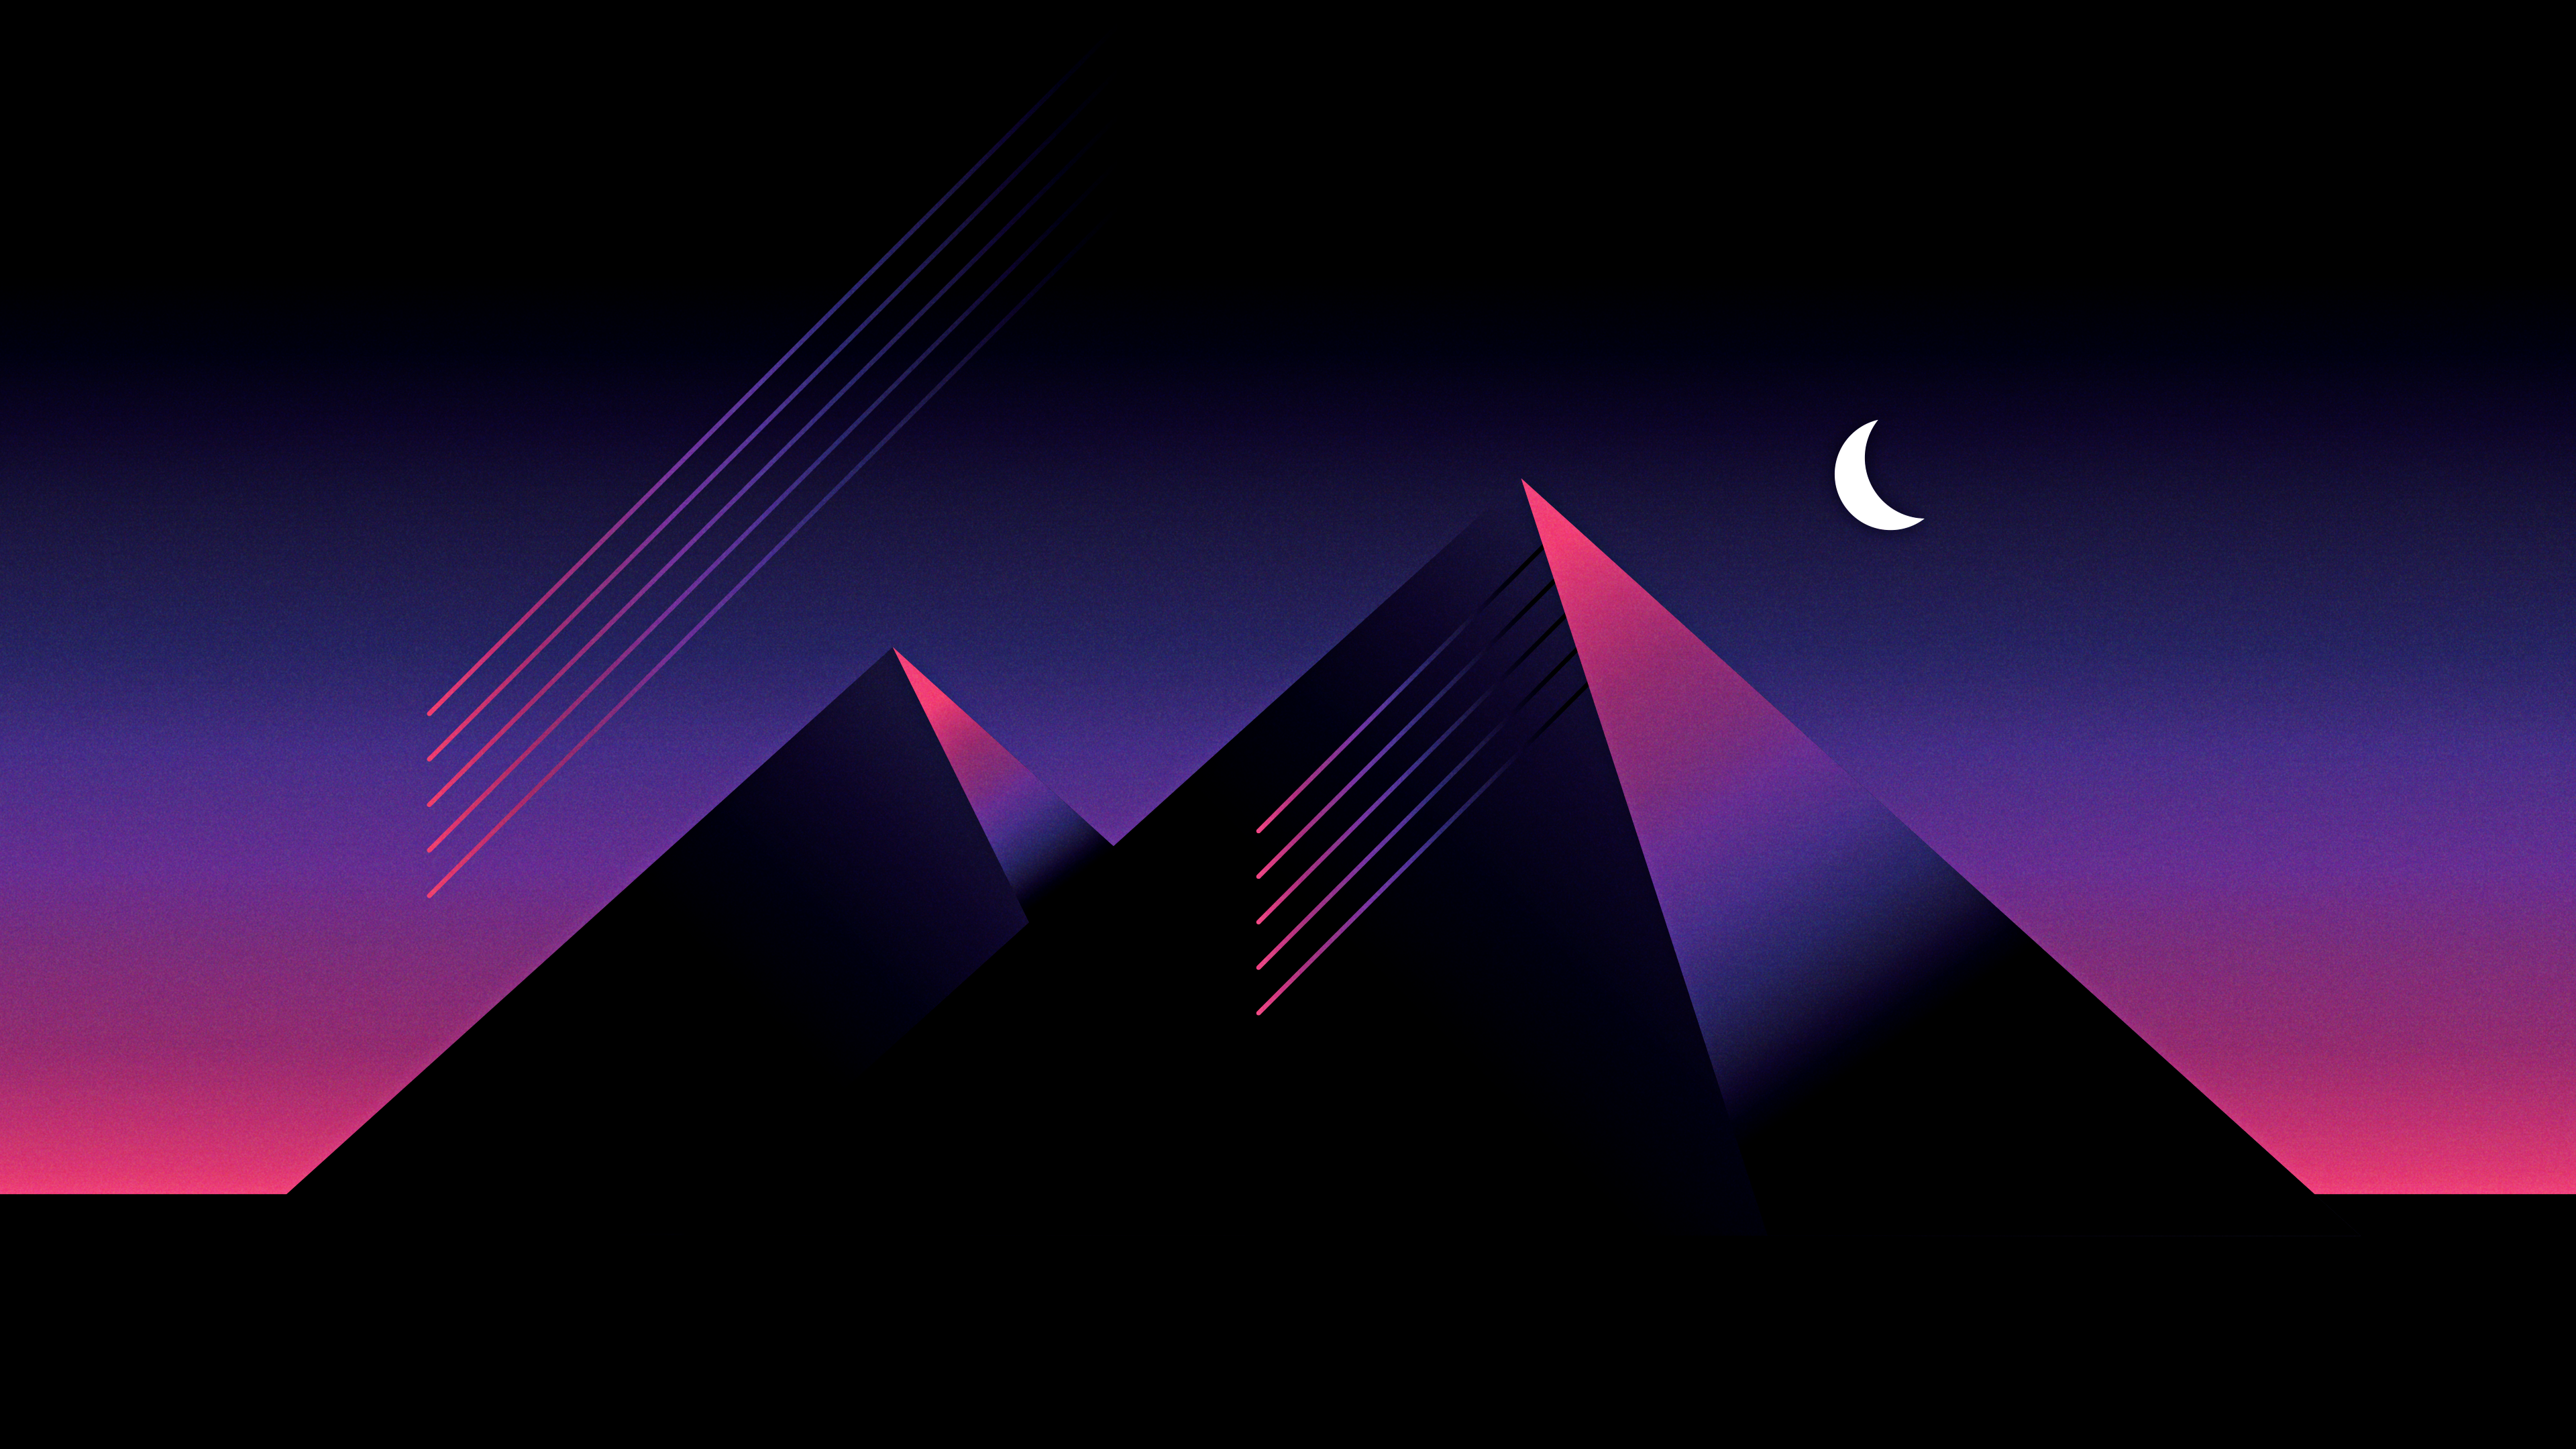 retro wallpaper hd,purple,blue,sky,light,violet